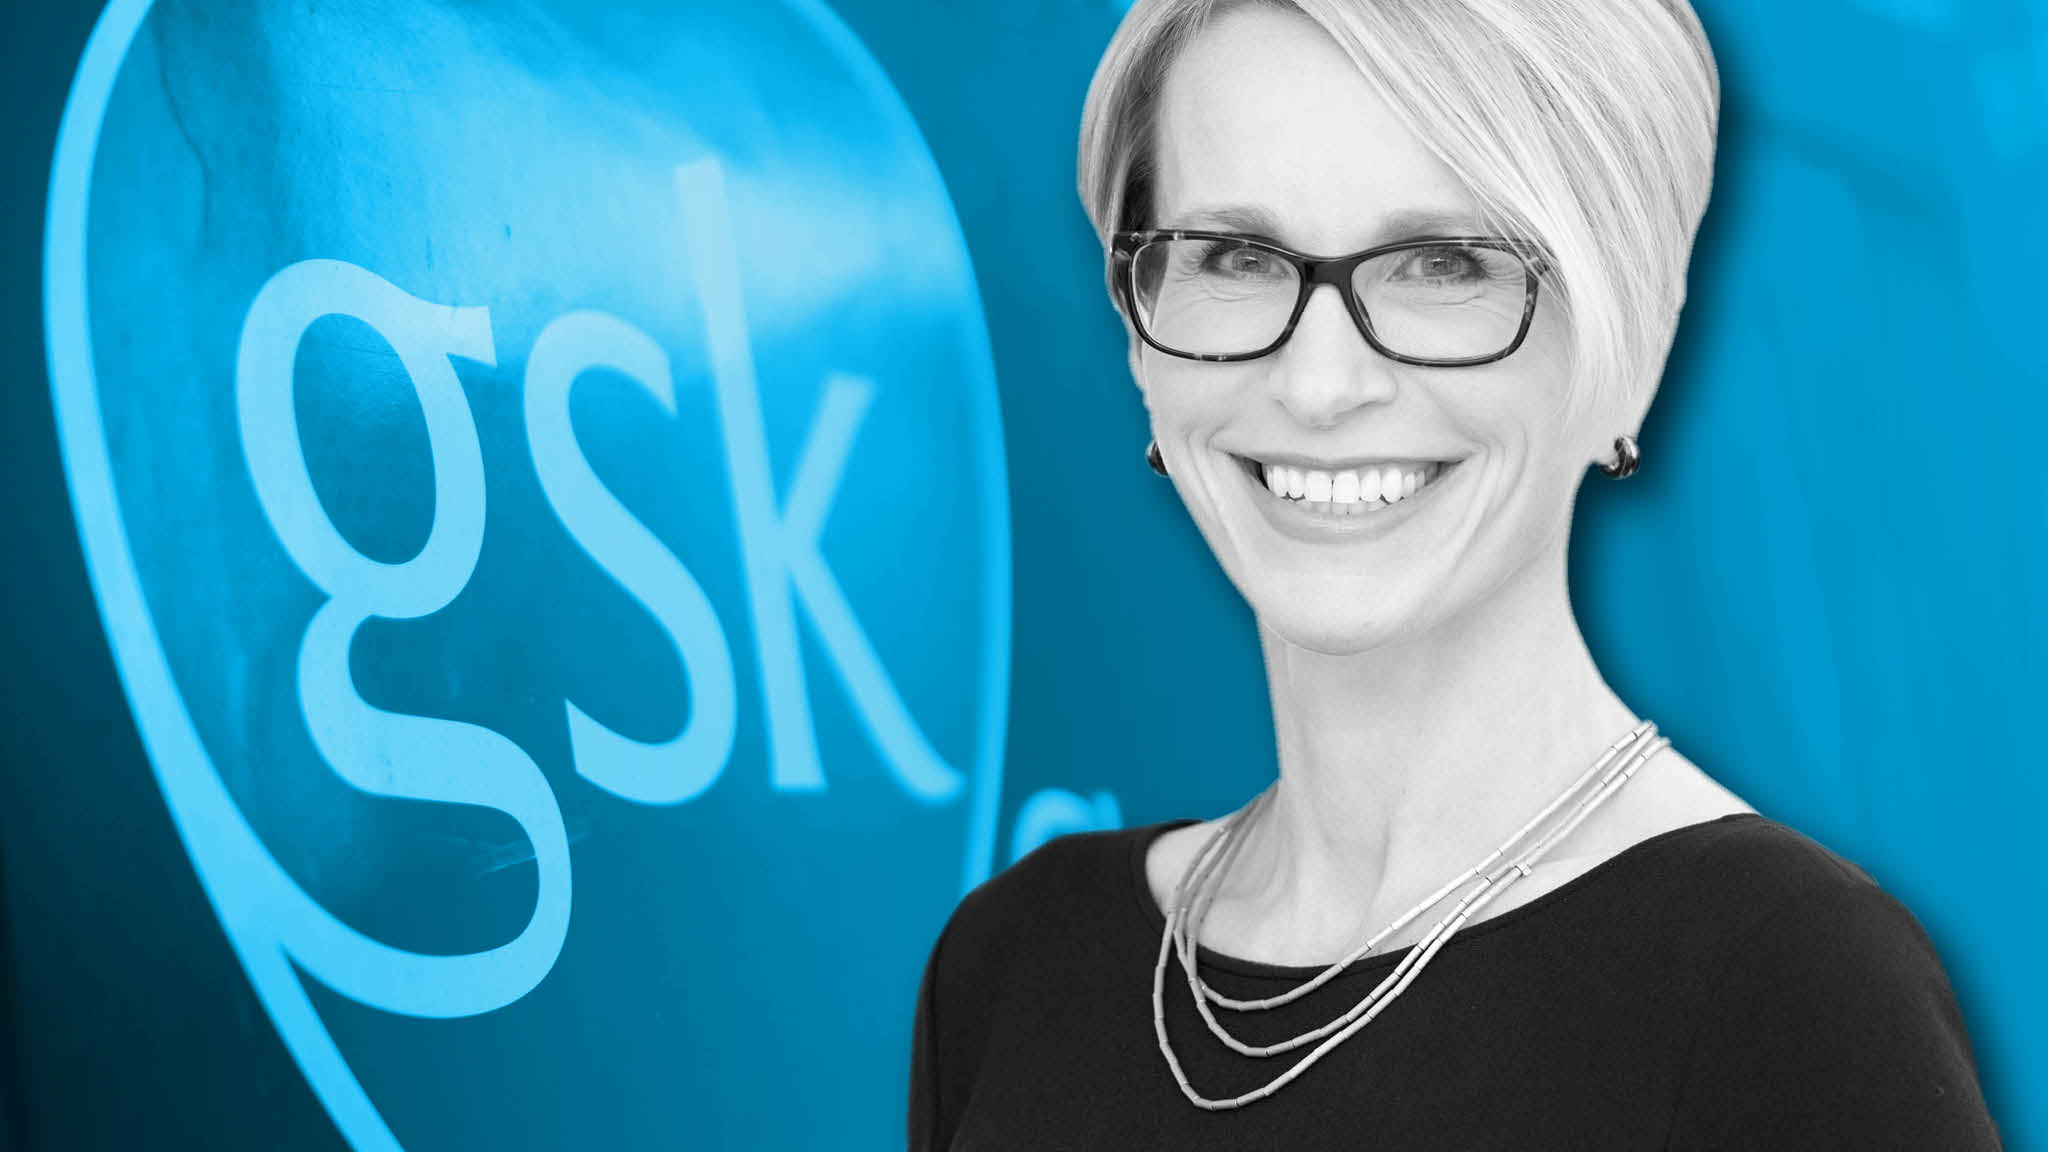 GSK chief plans to shake up culture and competitiveness